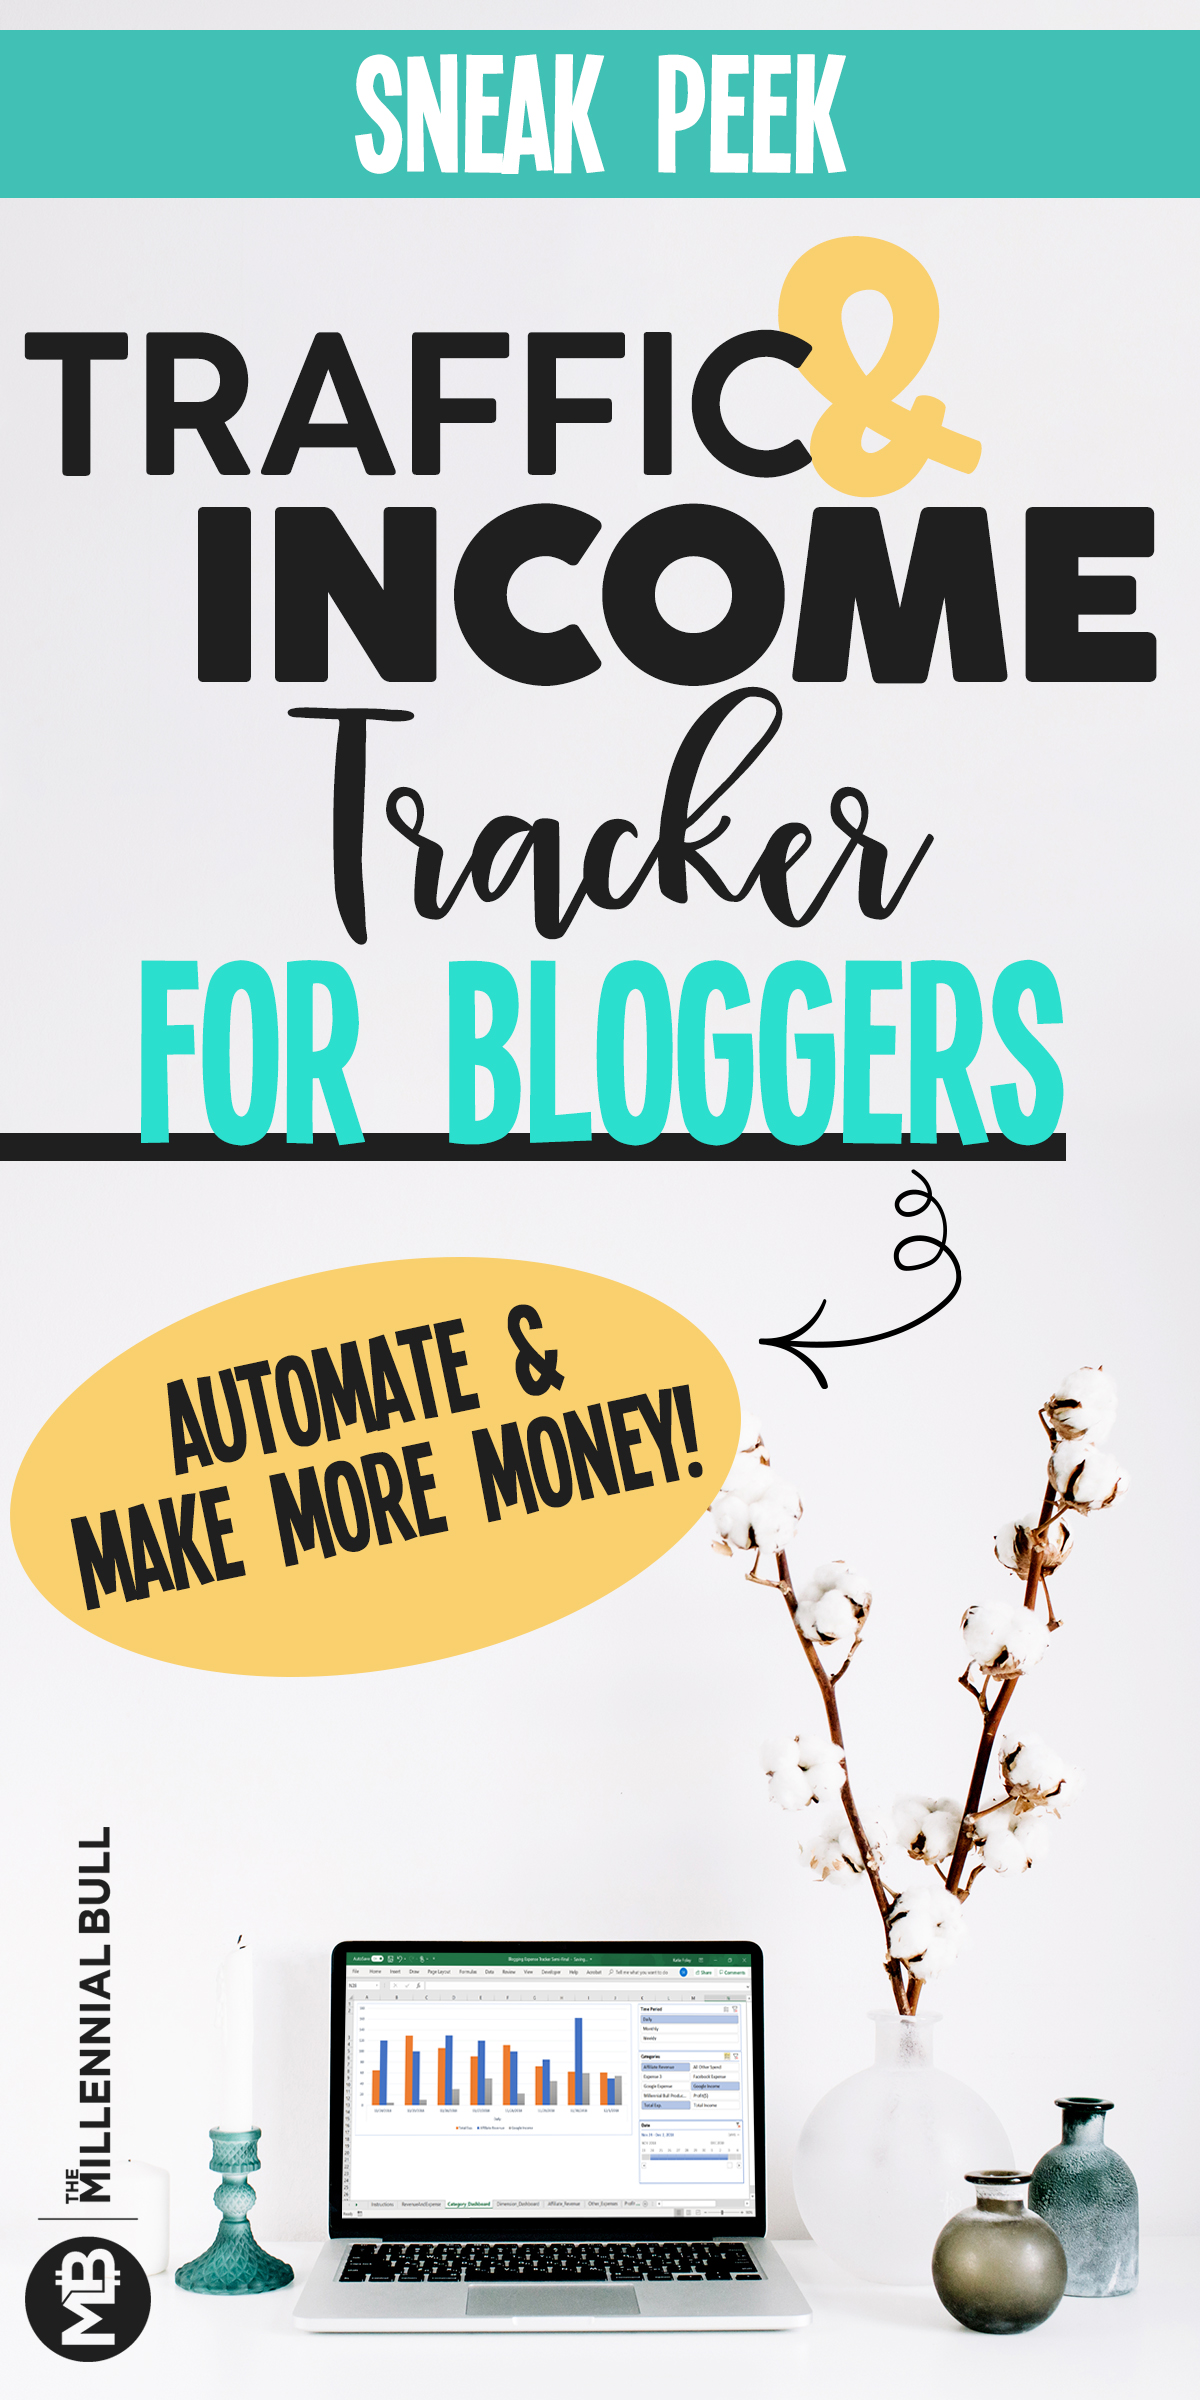 Sneak peak of our traffic and income tracker for bloggers! Automate your data and make more money blogging with this useful tool! Income reports made easy! #trackerforbloggers #incometracker #traffictracker #bloggingtips #bloggingtools